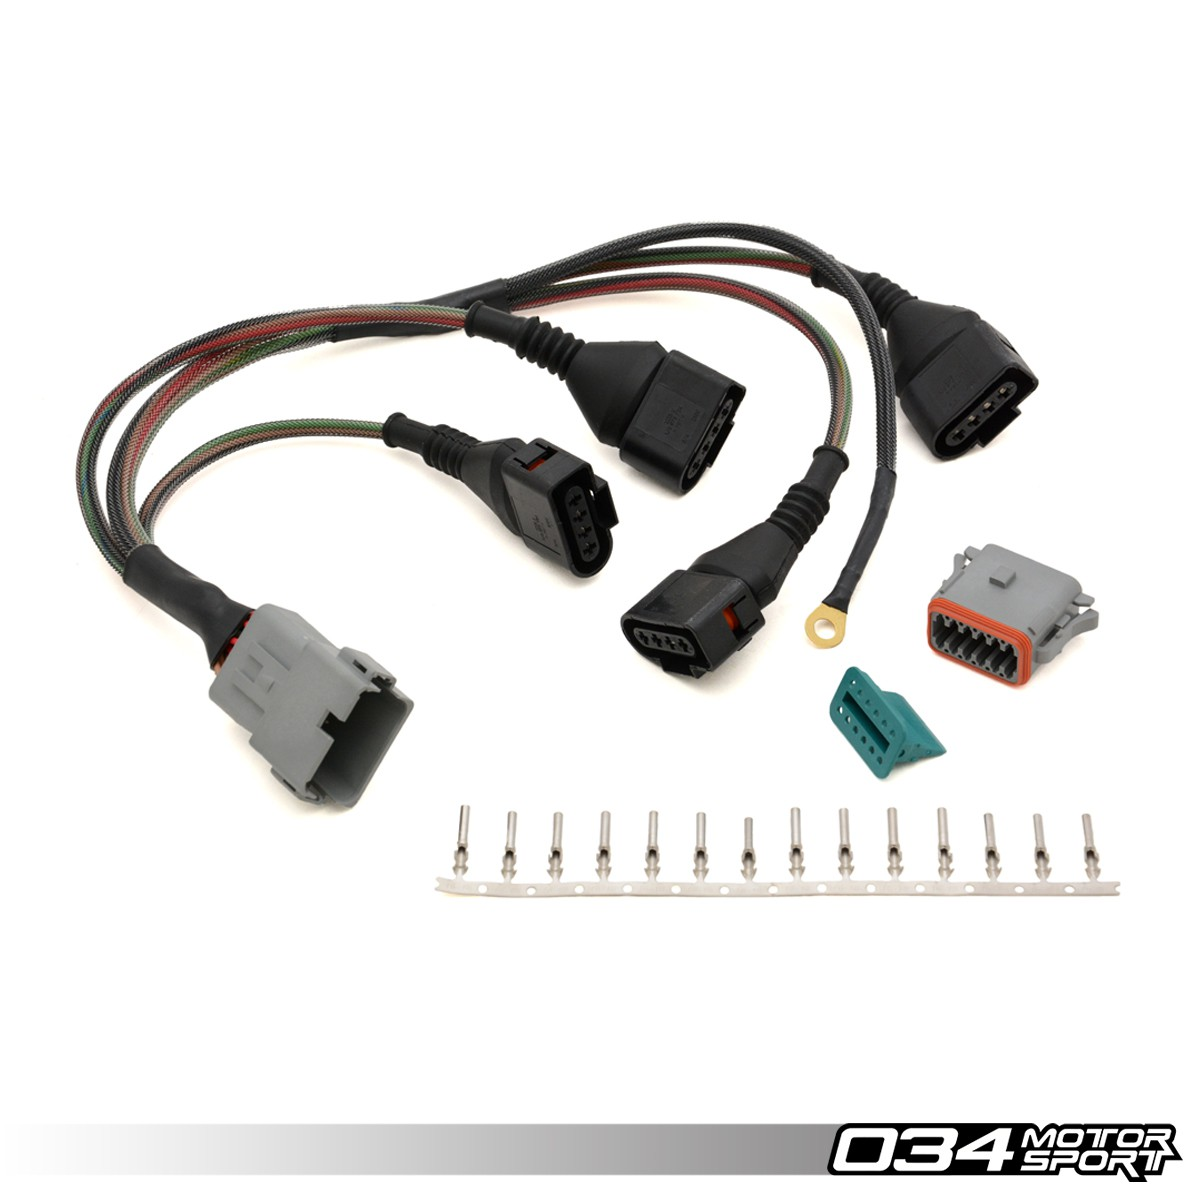 repair update harness audi volkswagen 18t with 4 wire coils 034motorsport 034 701 0004 2 repair update harness, audi volkswagen 1 8t with 4 wire coils 1.8T Coil Packs WV Approved at virtualis.co